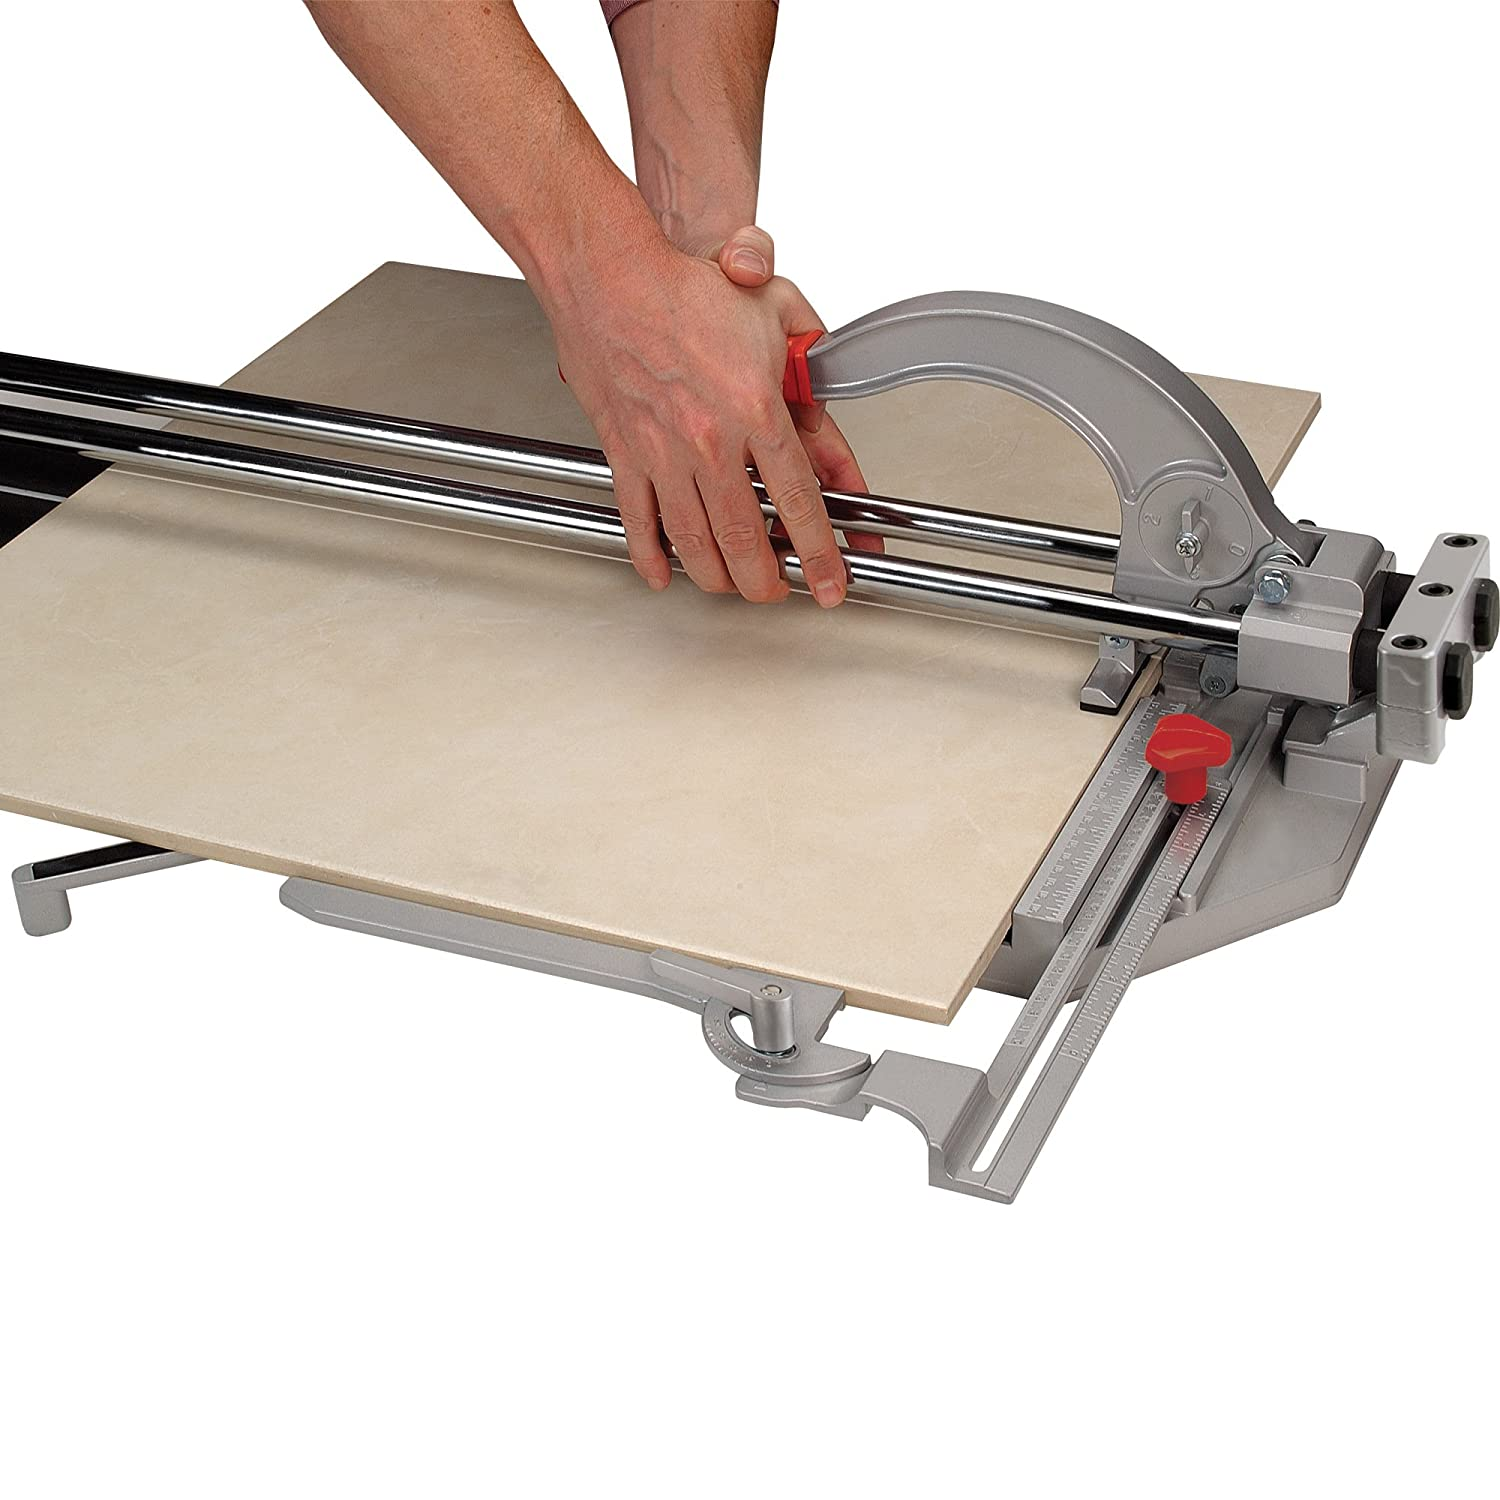 Brutus 10600br 24 inch rip and 18 inch diagonal pro porcelain tile brutus 10600br 24 inch rip and 18 inch diagonal pro porcelain tile cutter with 78 inch cutting wheel amazon dailygadgetfo Gallery